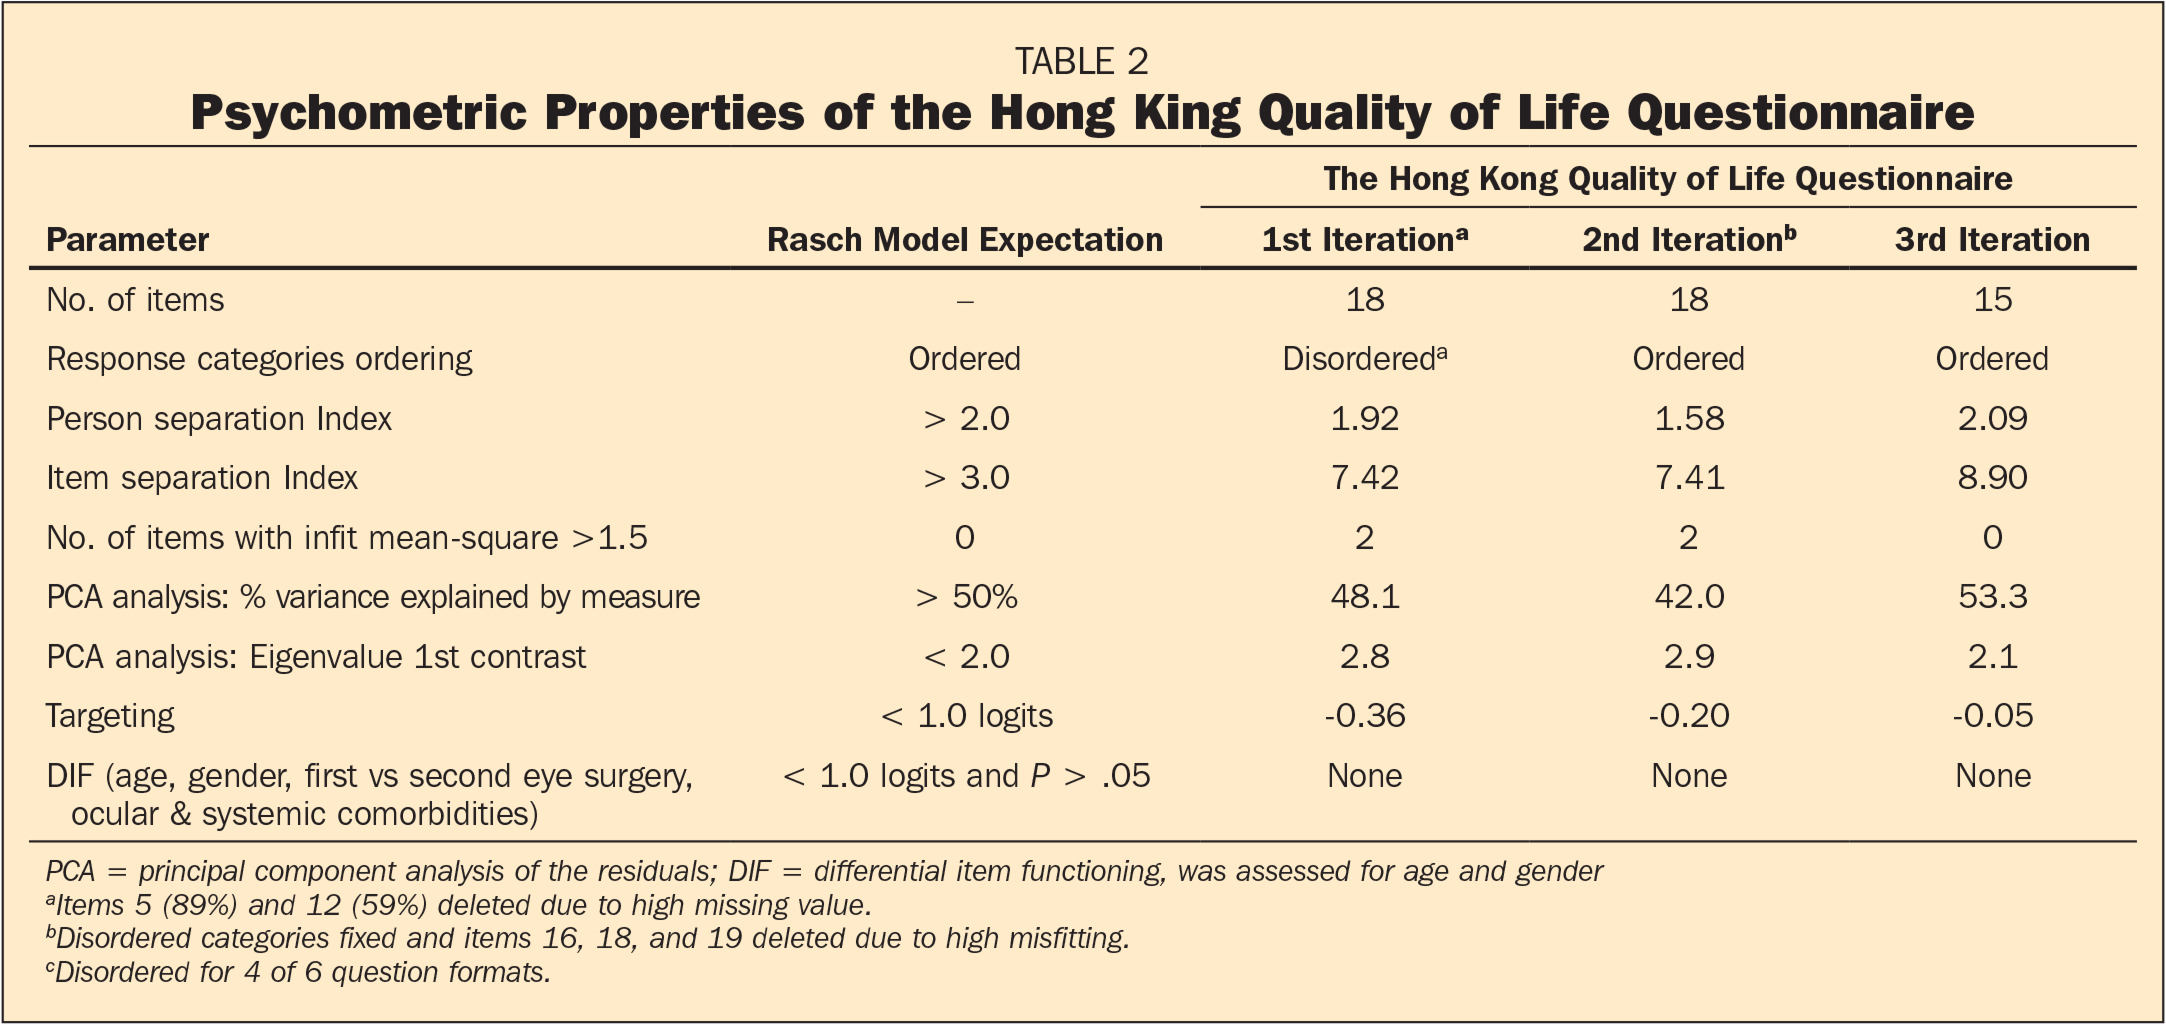 Psychometric Properties of the Hong King Quality of Life Questionnaire